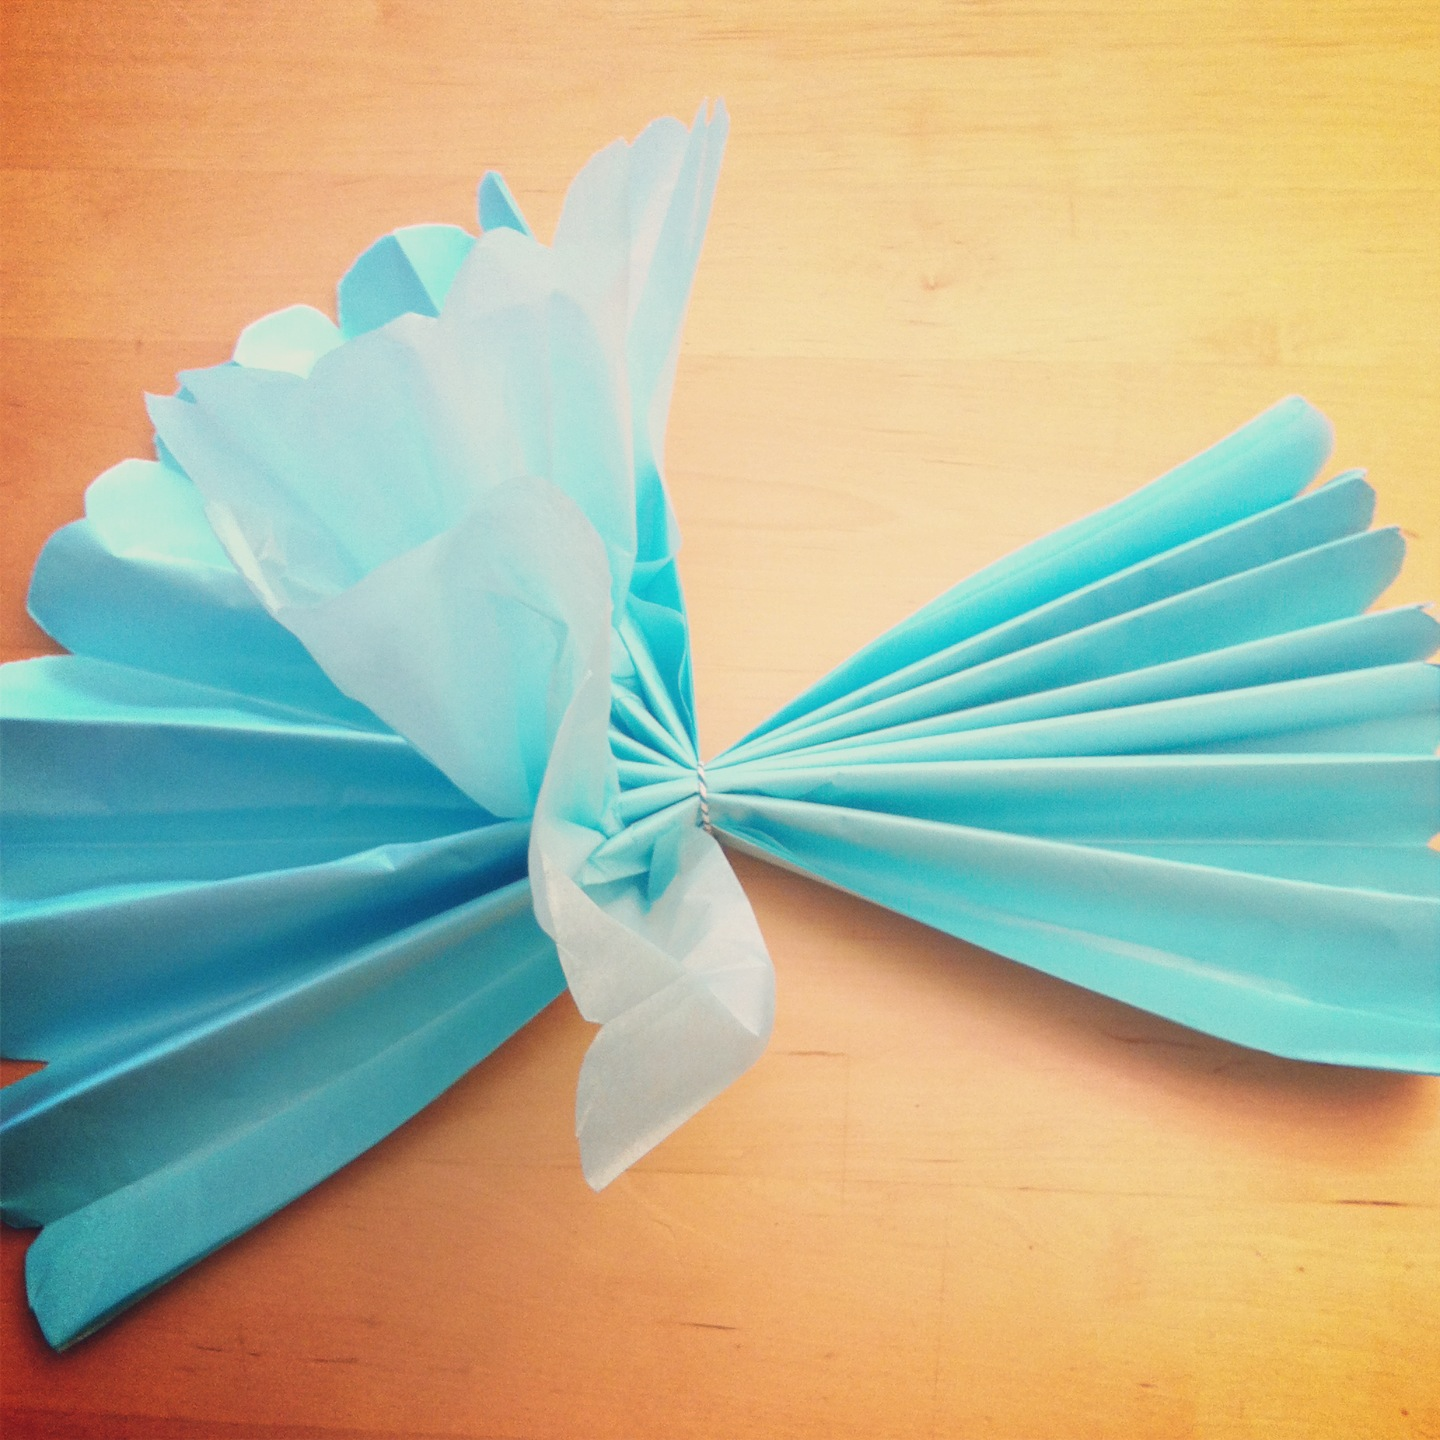 DIY Giant Tissue Paper Flowers Tutorial 2 for $1.00 Make Beautiful Birthday Party Decorations Step 6